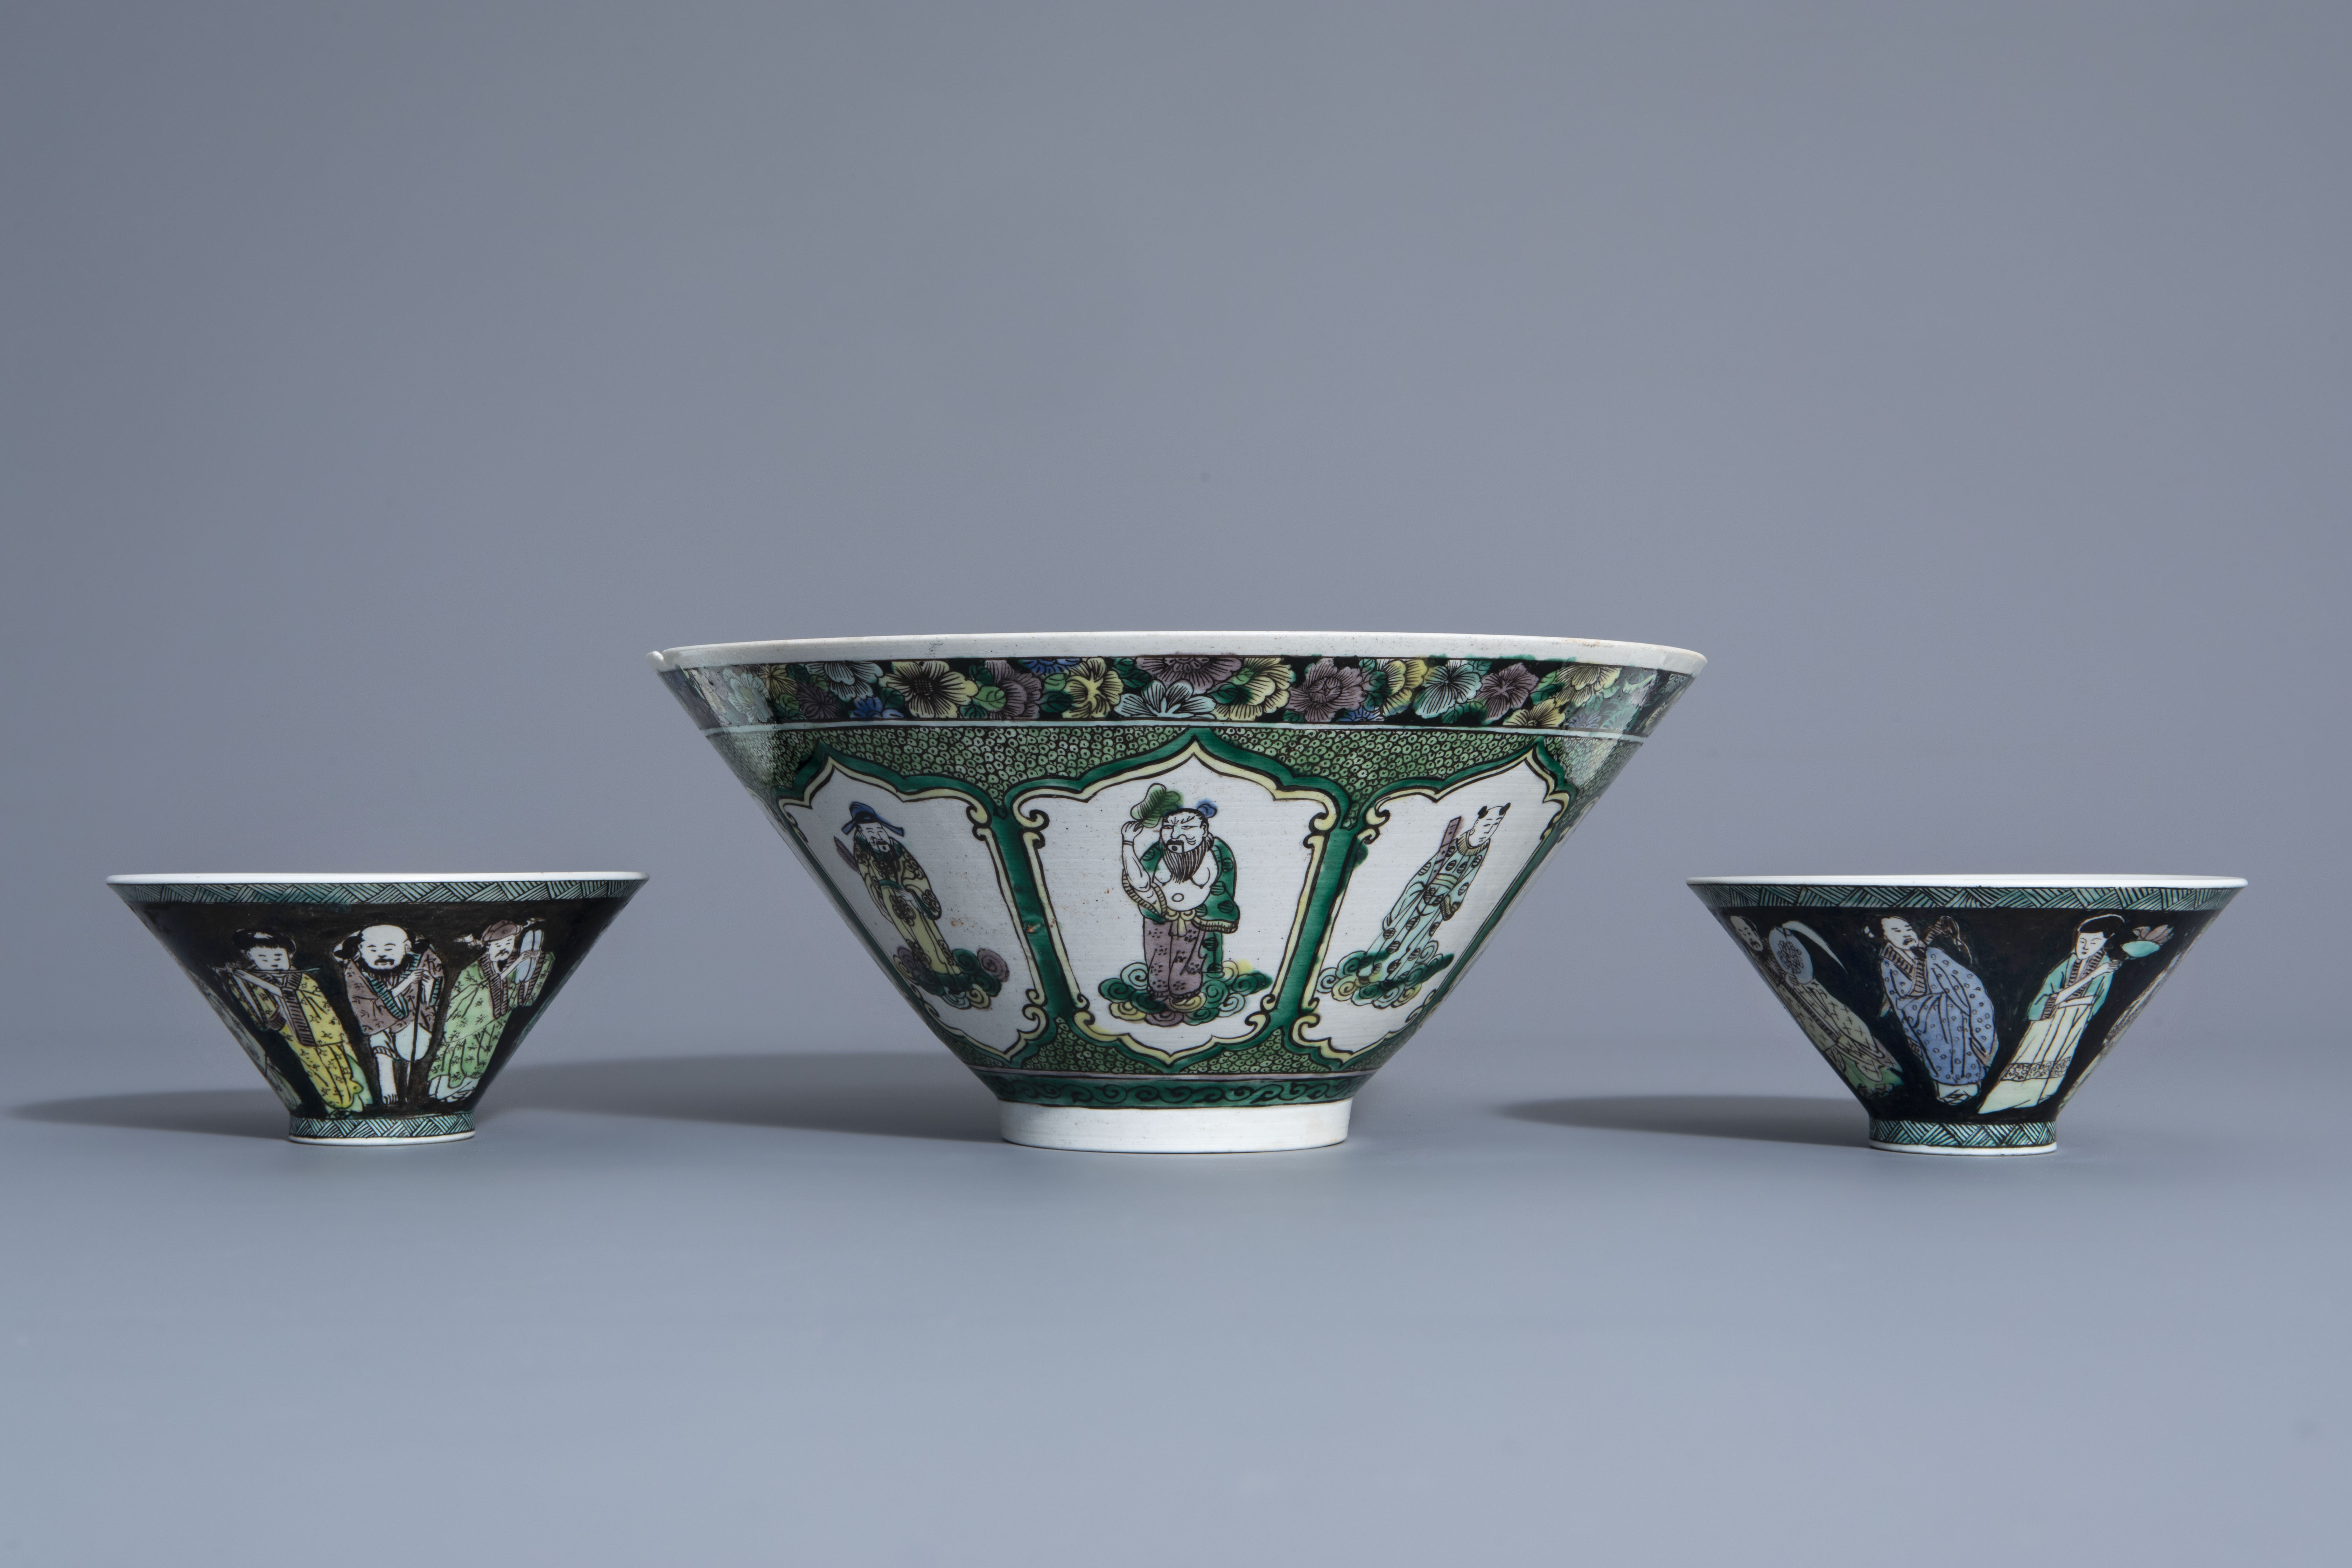 Three Chinese verte biscuit bowls with figurative design, Republic, 20th C. - Image 3 of 7